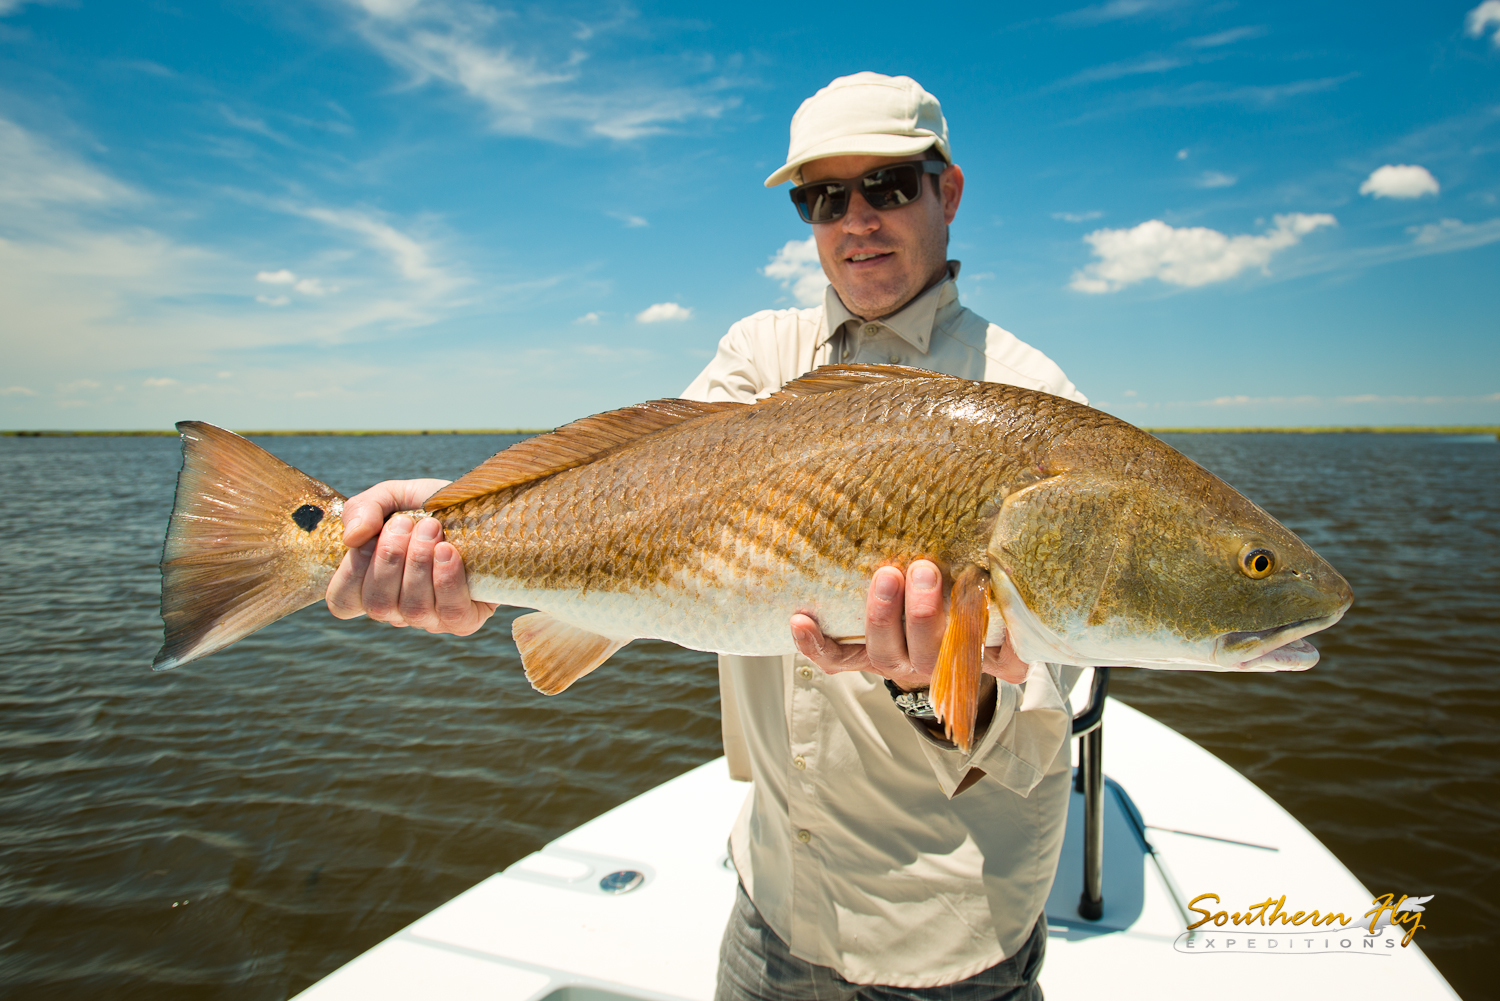 Oklahoma Anglers try Fly Fishing New Orleans Style Red Fish